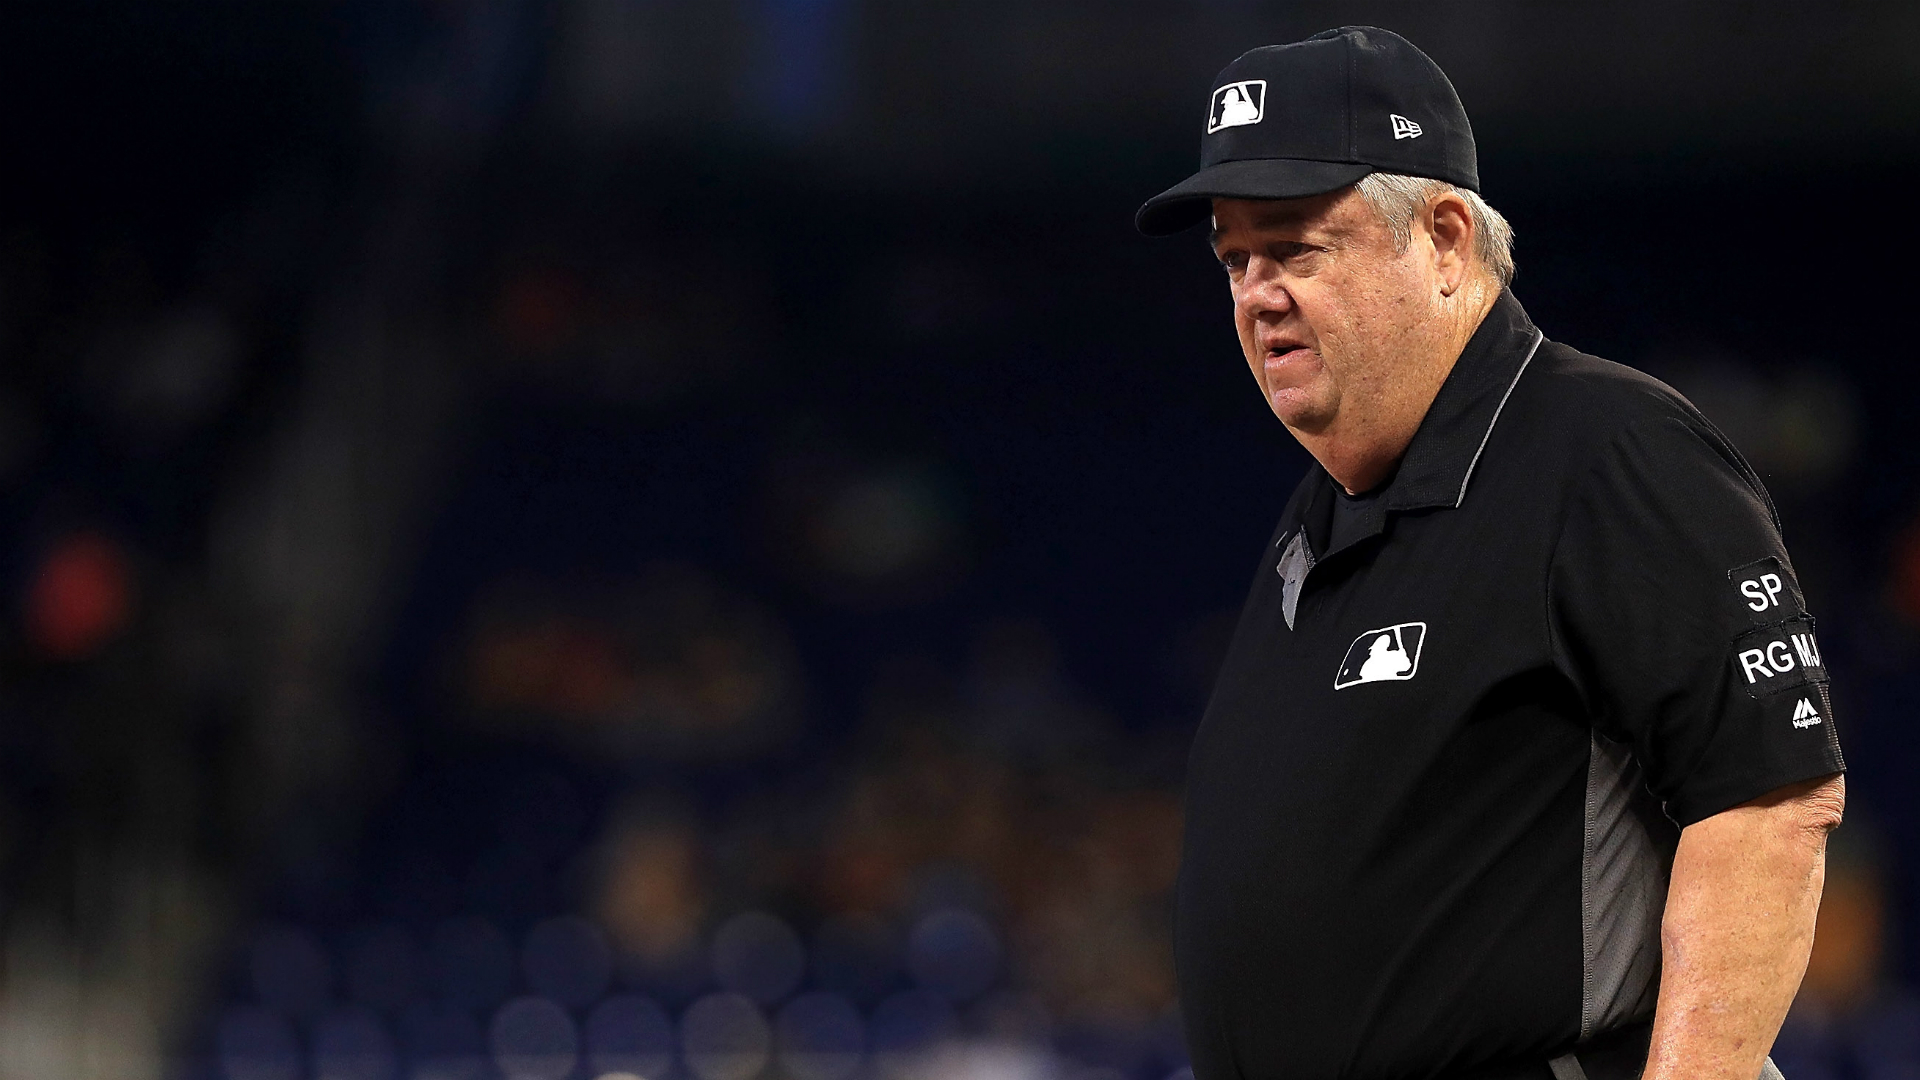 Why Are MLB Baseball Umpires Wearing White Wristbands?